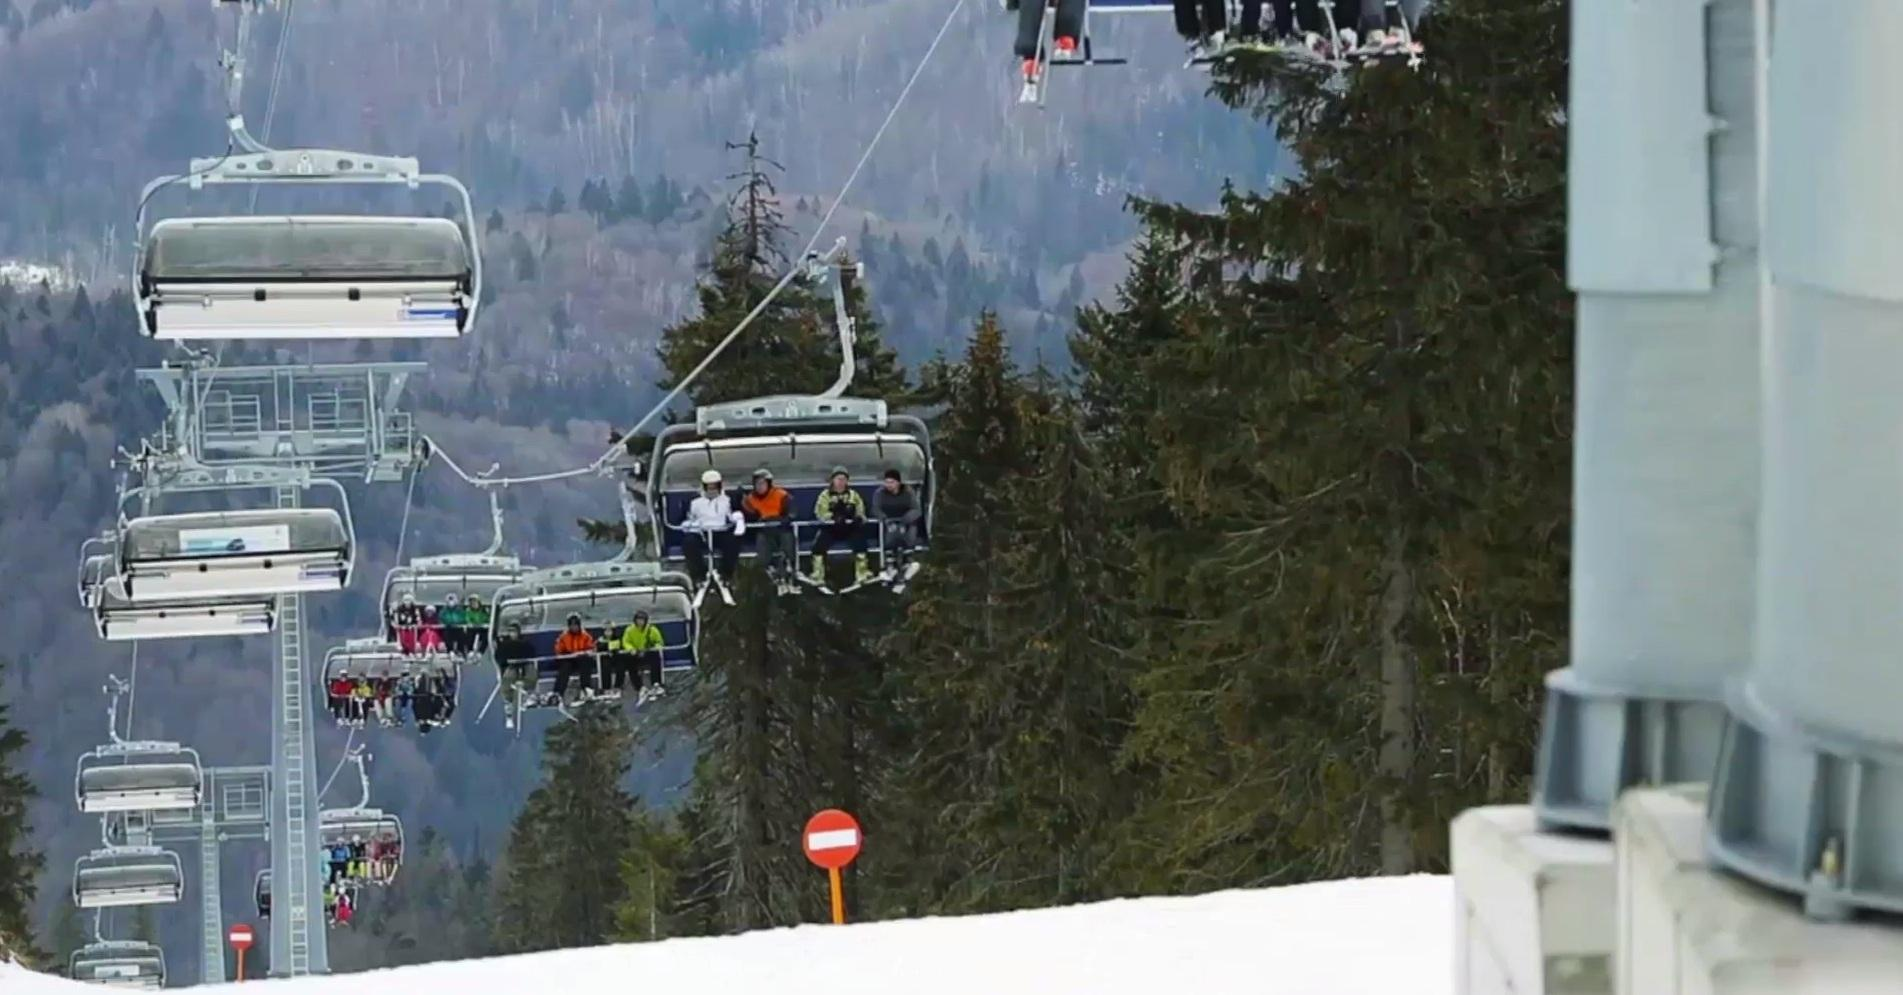 Lausanne to host Winter Youth Olympics 2020